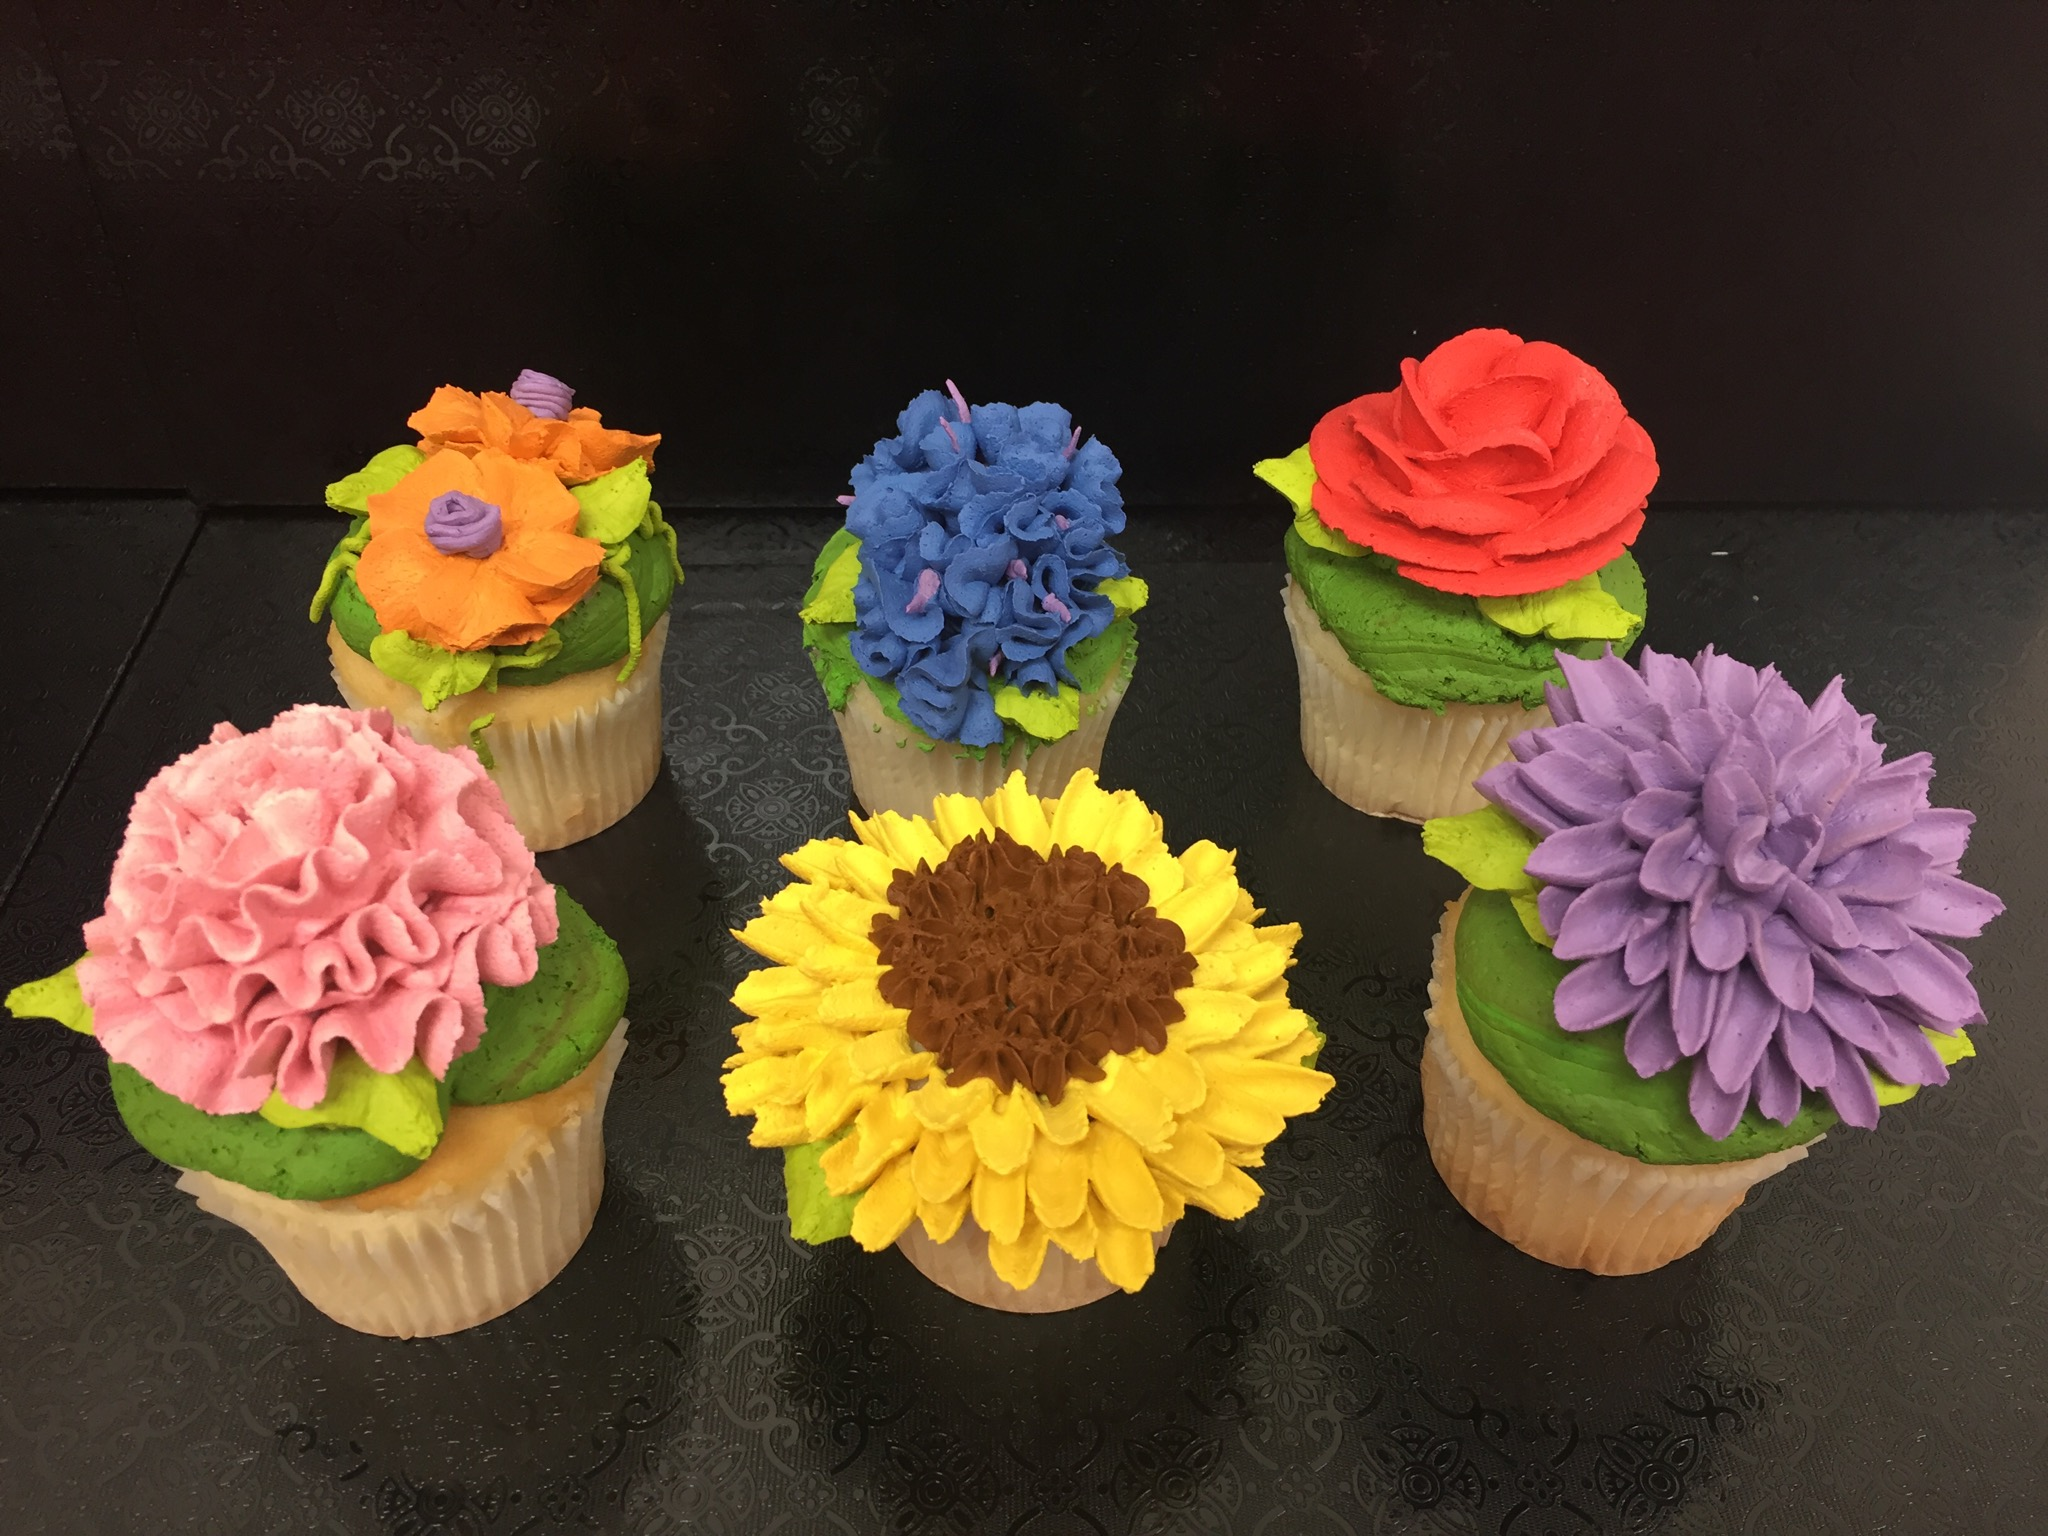 Corks N Confections Buttercream Flower Class (BYOB)